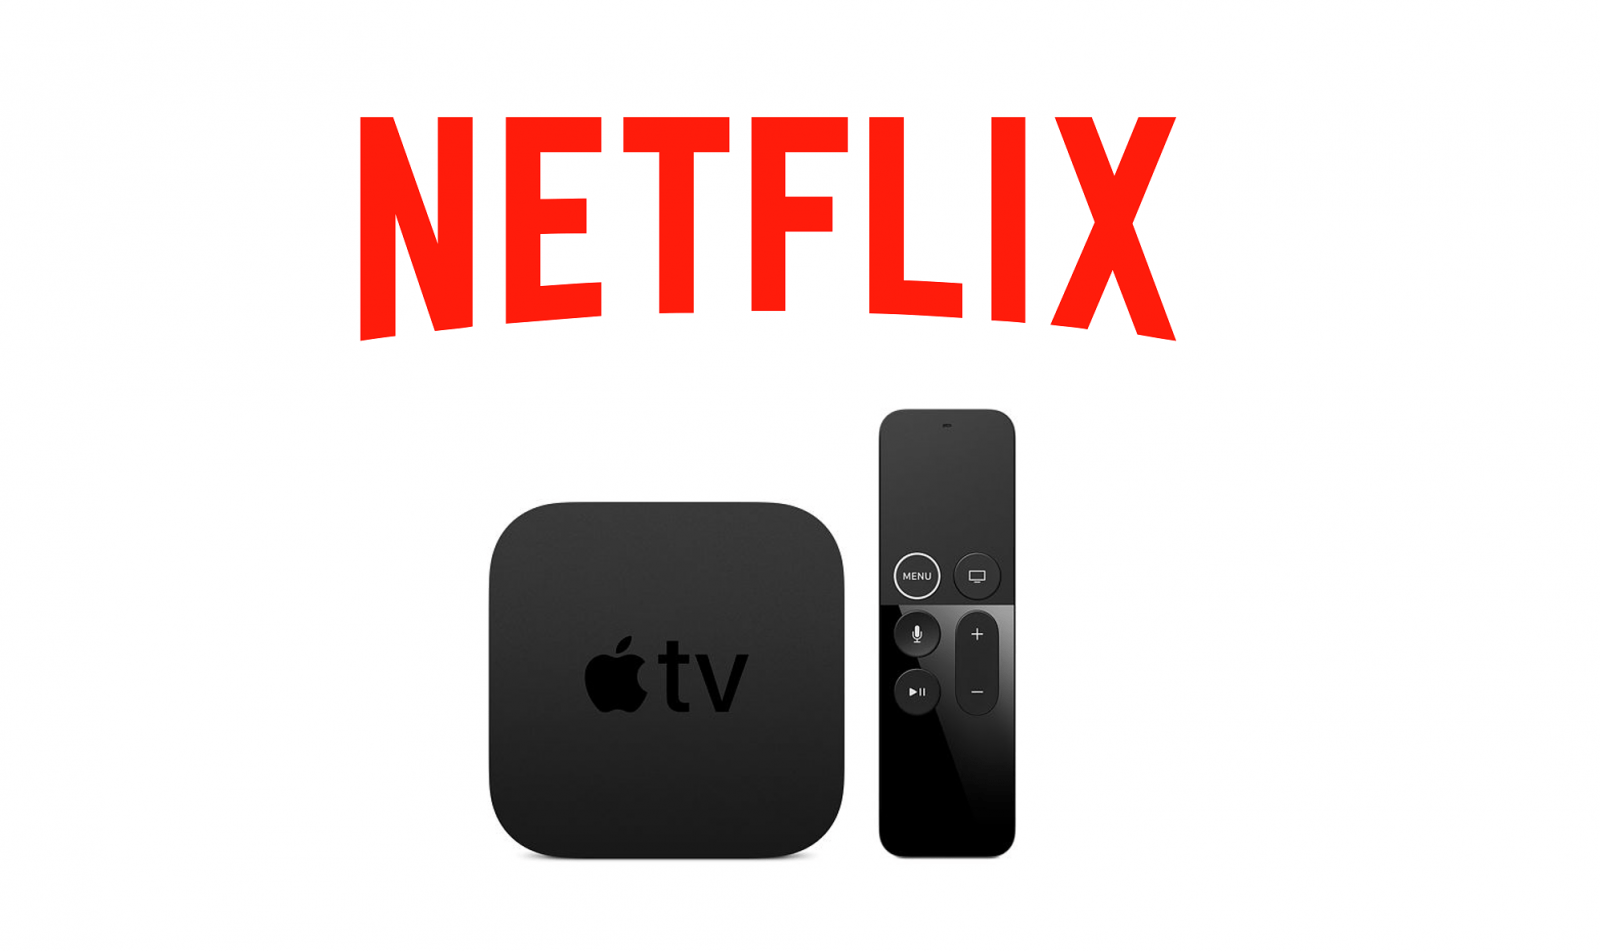 How to Install Netflix on Apple TV [2 Different Methods]